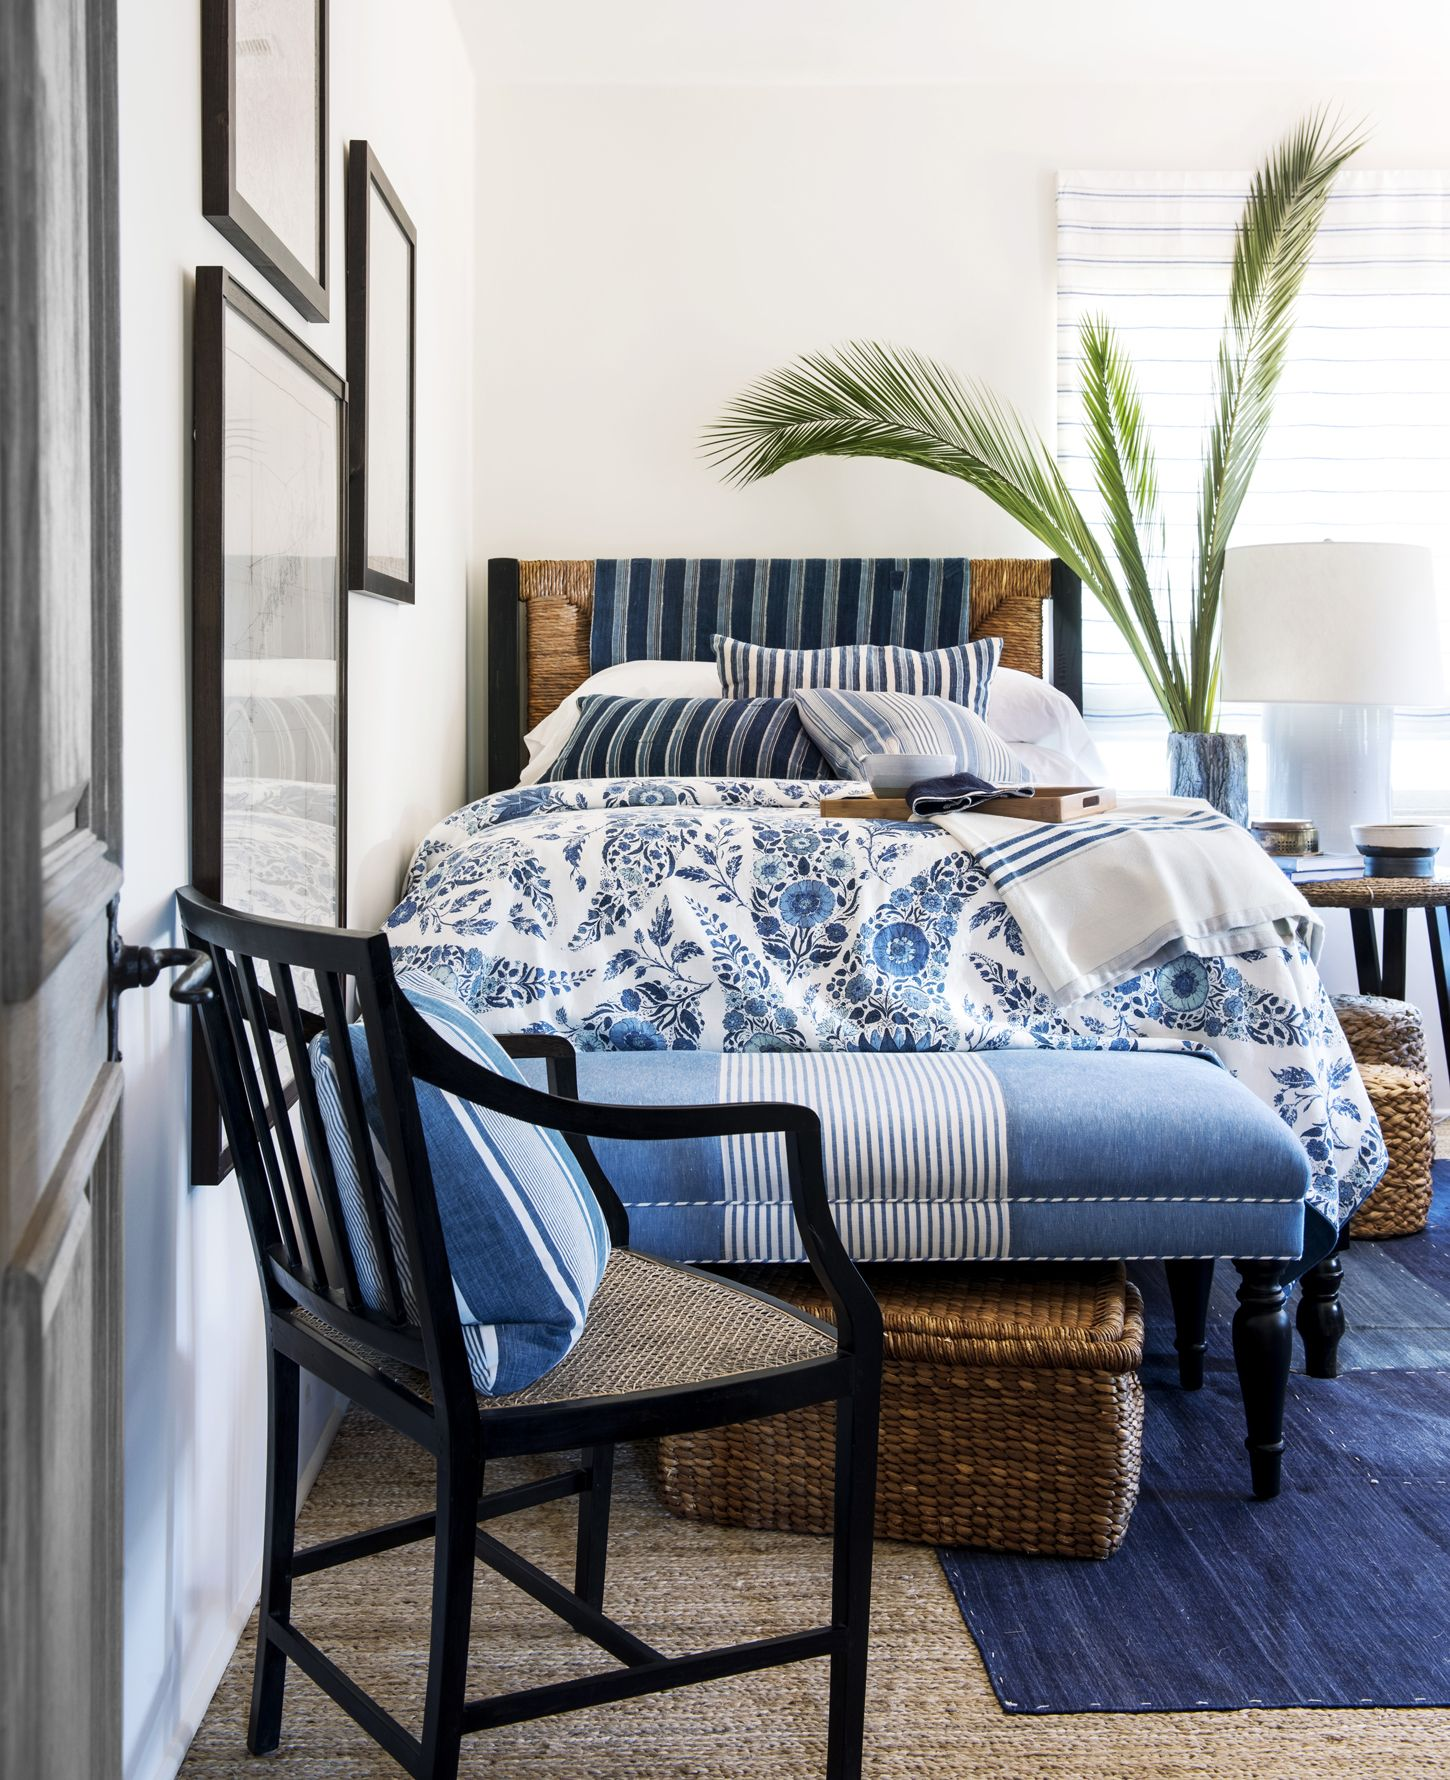 Best 15 Rules For Decorating With Blue And White Blue Rooms 400 x 300